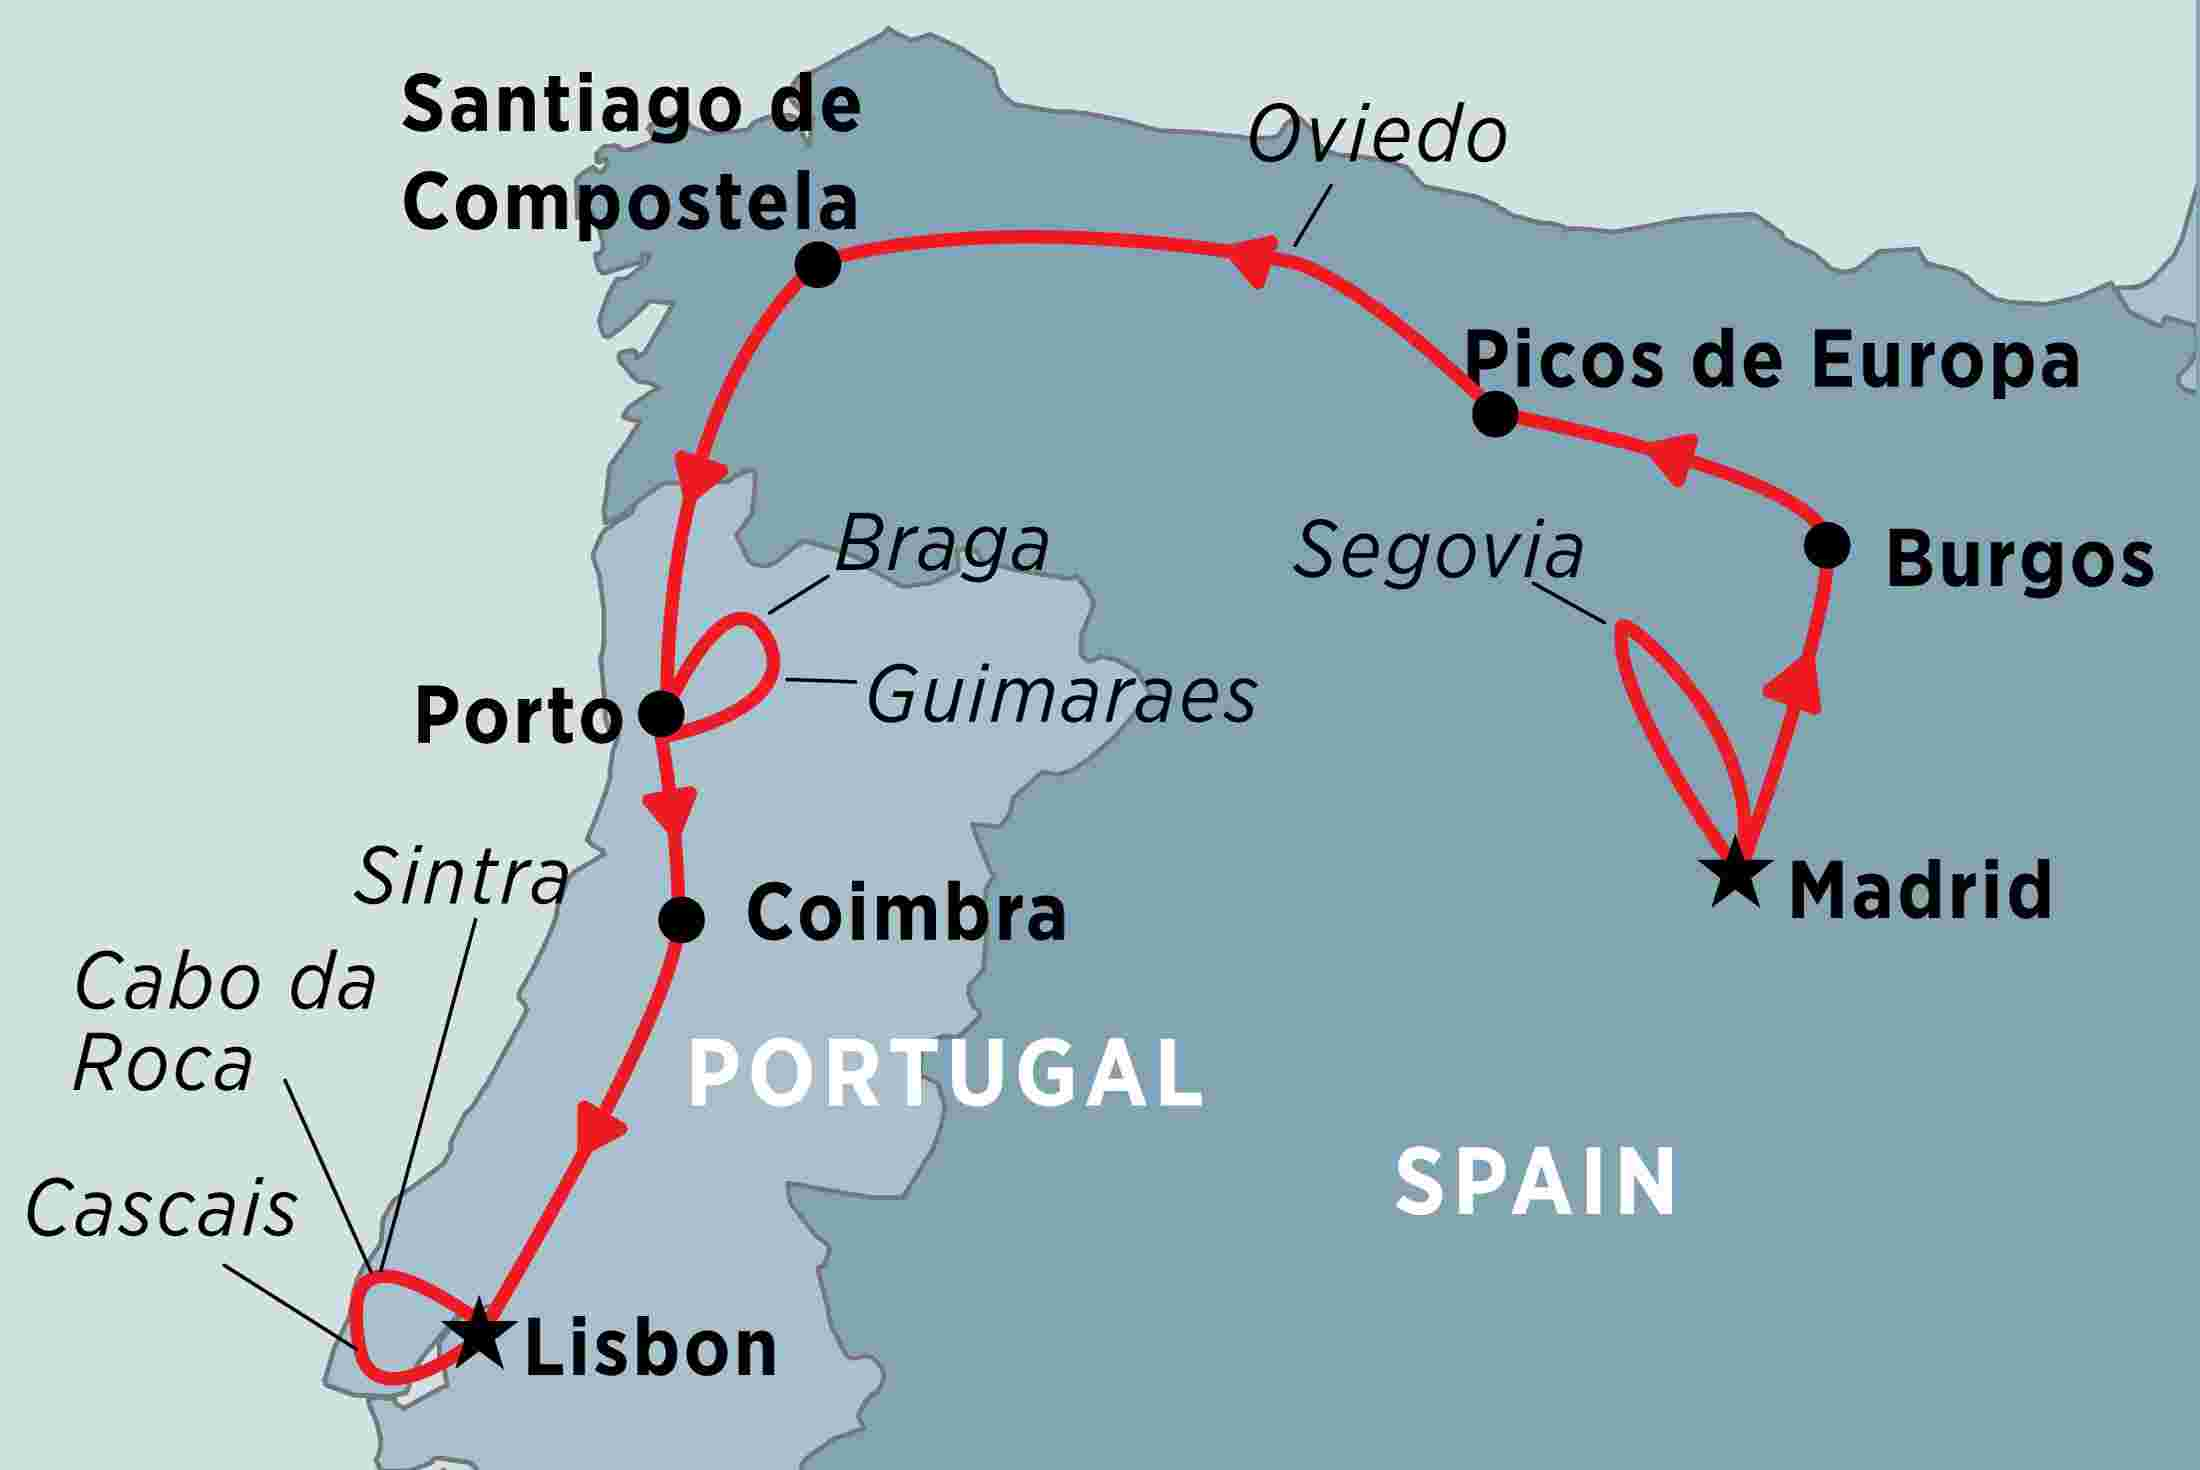 Northern Spain & Portugal Explorer overview | Northern Spain & Portugal on blank map of washington, blank map of rome, blank map of sydney, blank map of caribbean sea, blank map of cape town, blank map of oahu, blank map of mexico city, blank map of buenos aires, blank map of san francisco, blank map of cozumel, blank map of singapore, blank map of athens, blank map of english channel, blank map of madrid, blank map of la paz, blank map of new england, blank map of northern italy, blank map of macau, blank map of portugal,